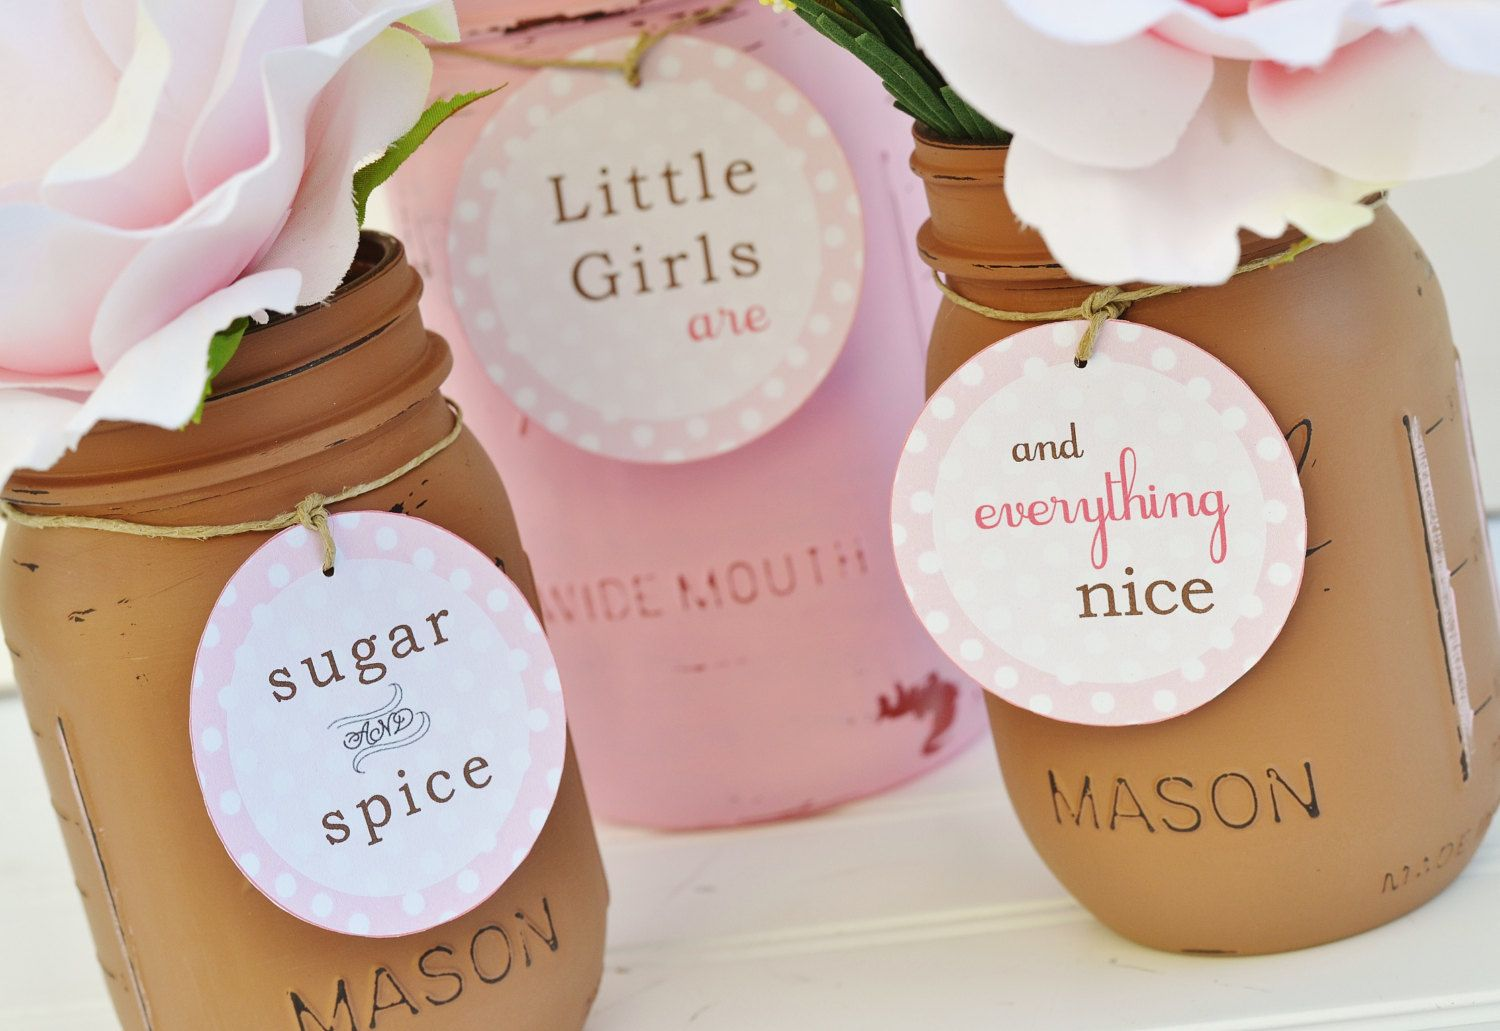 Baby Shower Decorations – Baby Shower Decor – PINK AND BROWN – Sugar & Spice and Everything Nice – Baby Girl, Mason Jar Centerpiece